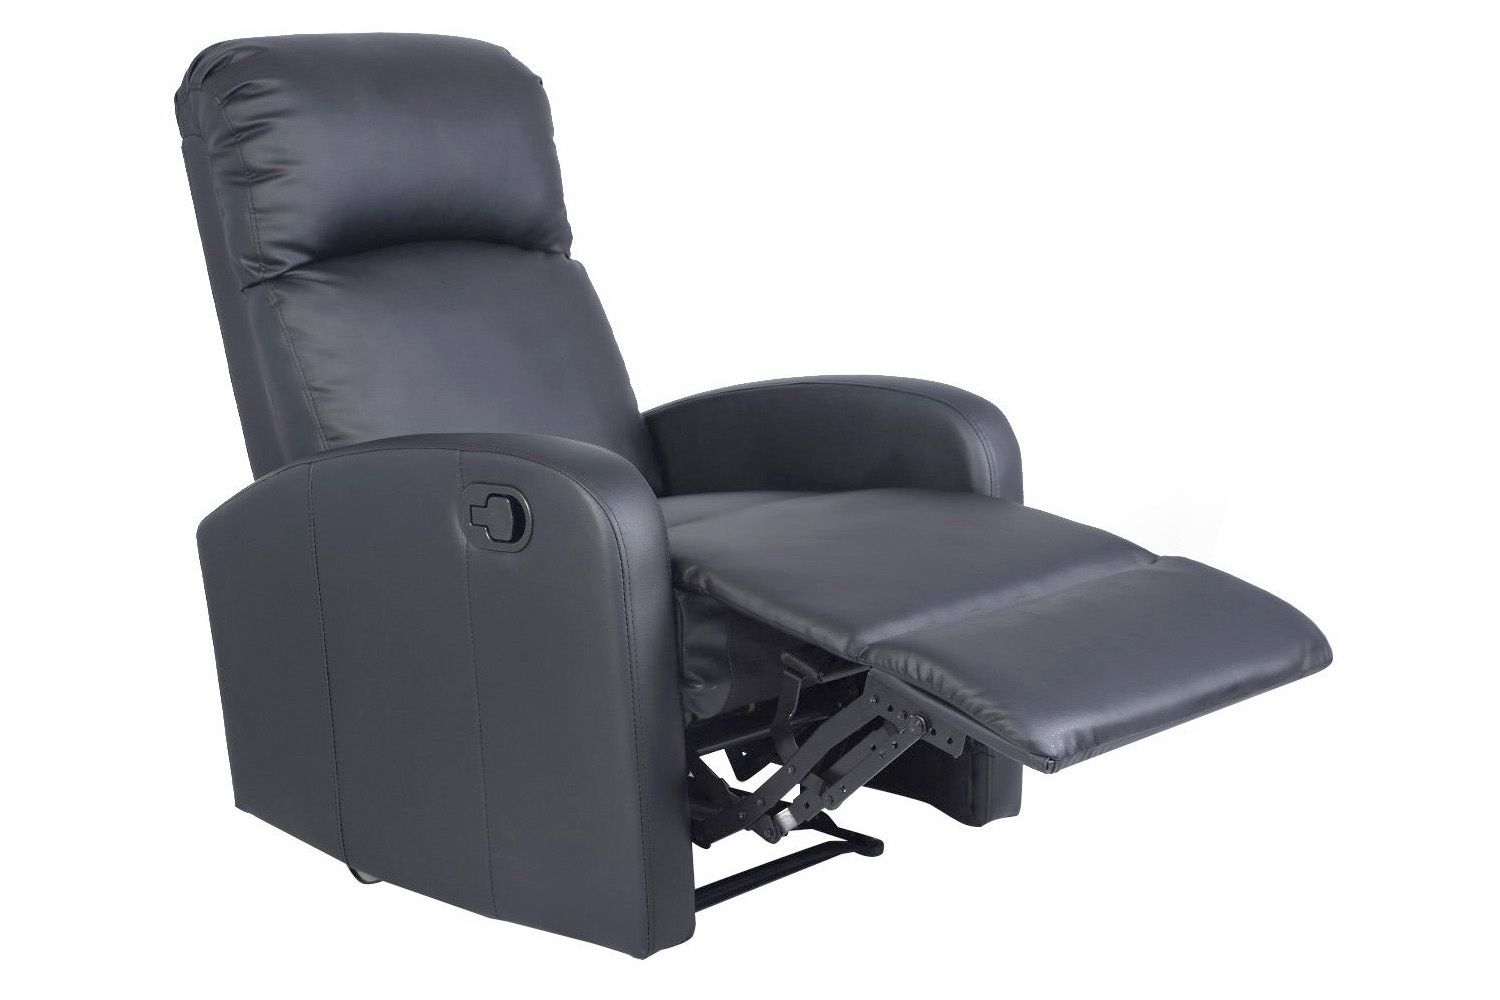 Prime The Best Home Theater Seating Options Of 2019 Home Interior And Landscaping Oversignezvosmurscom